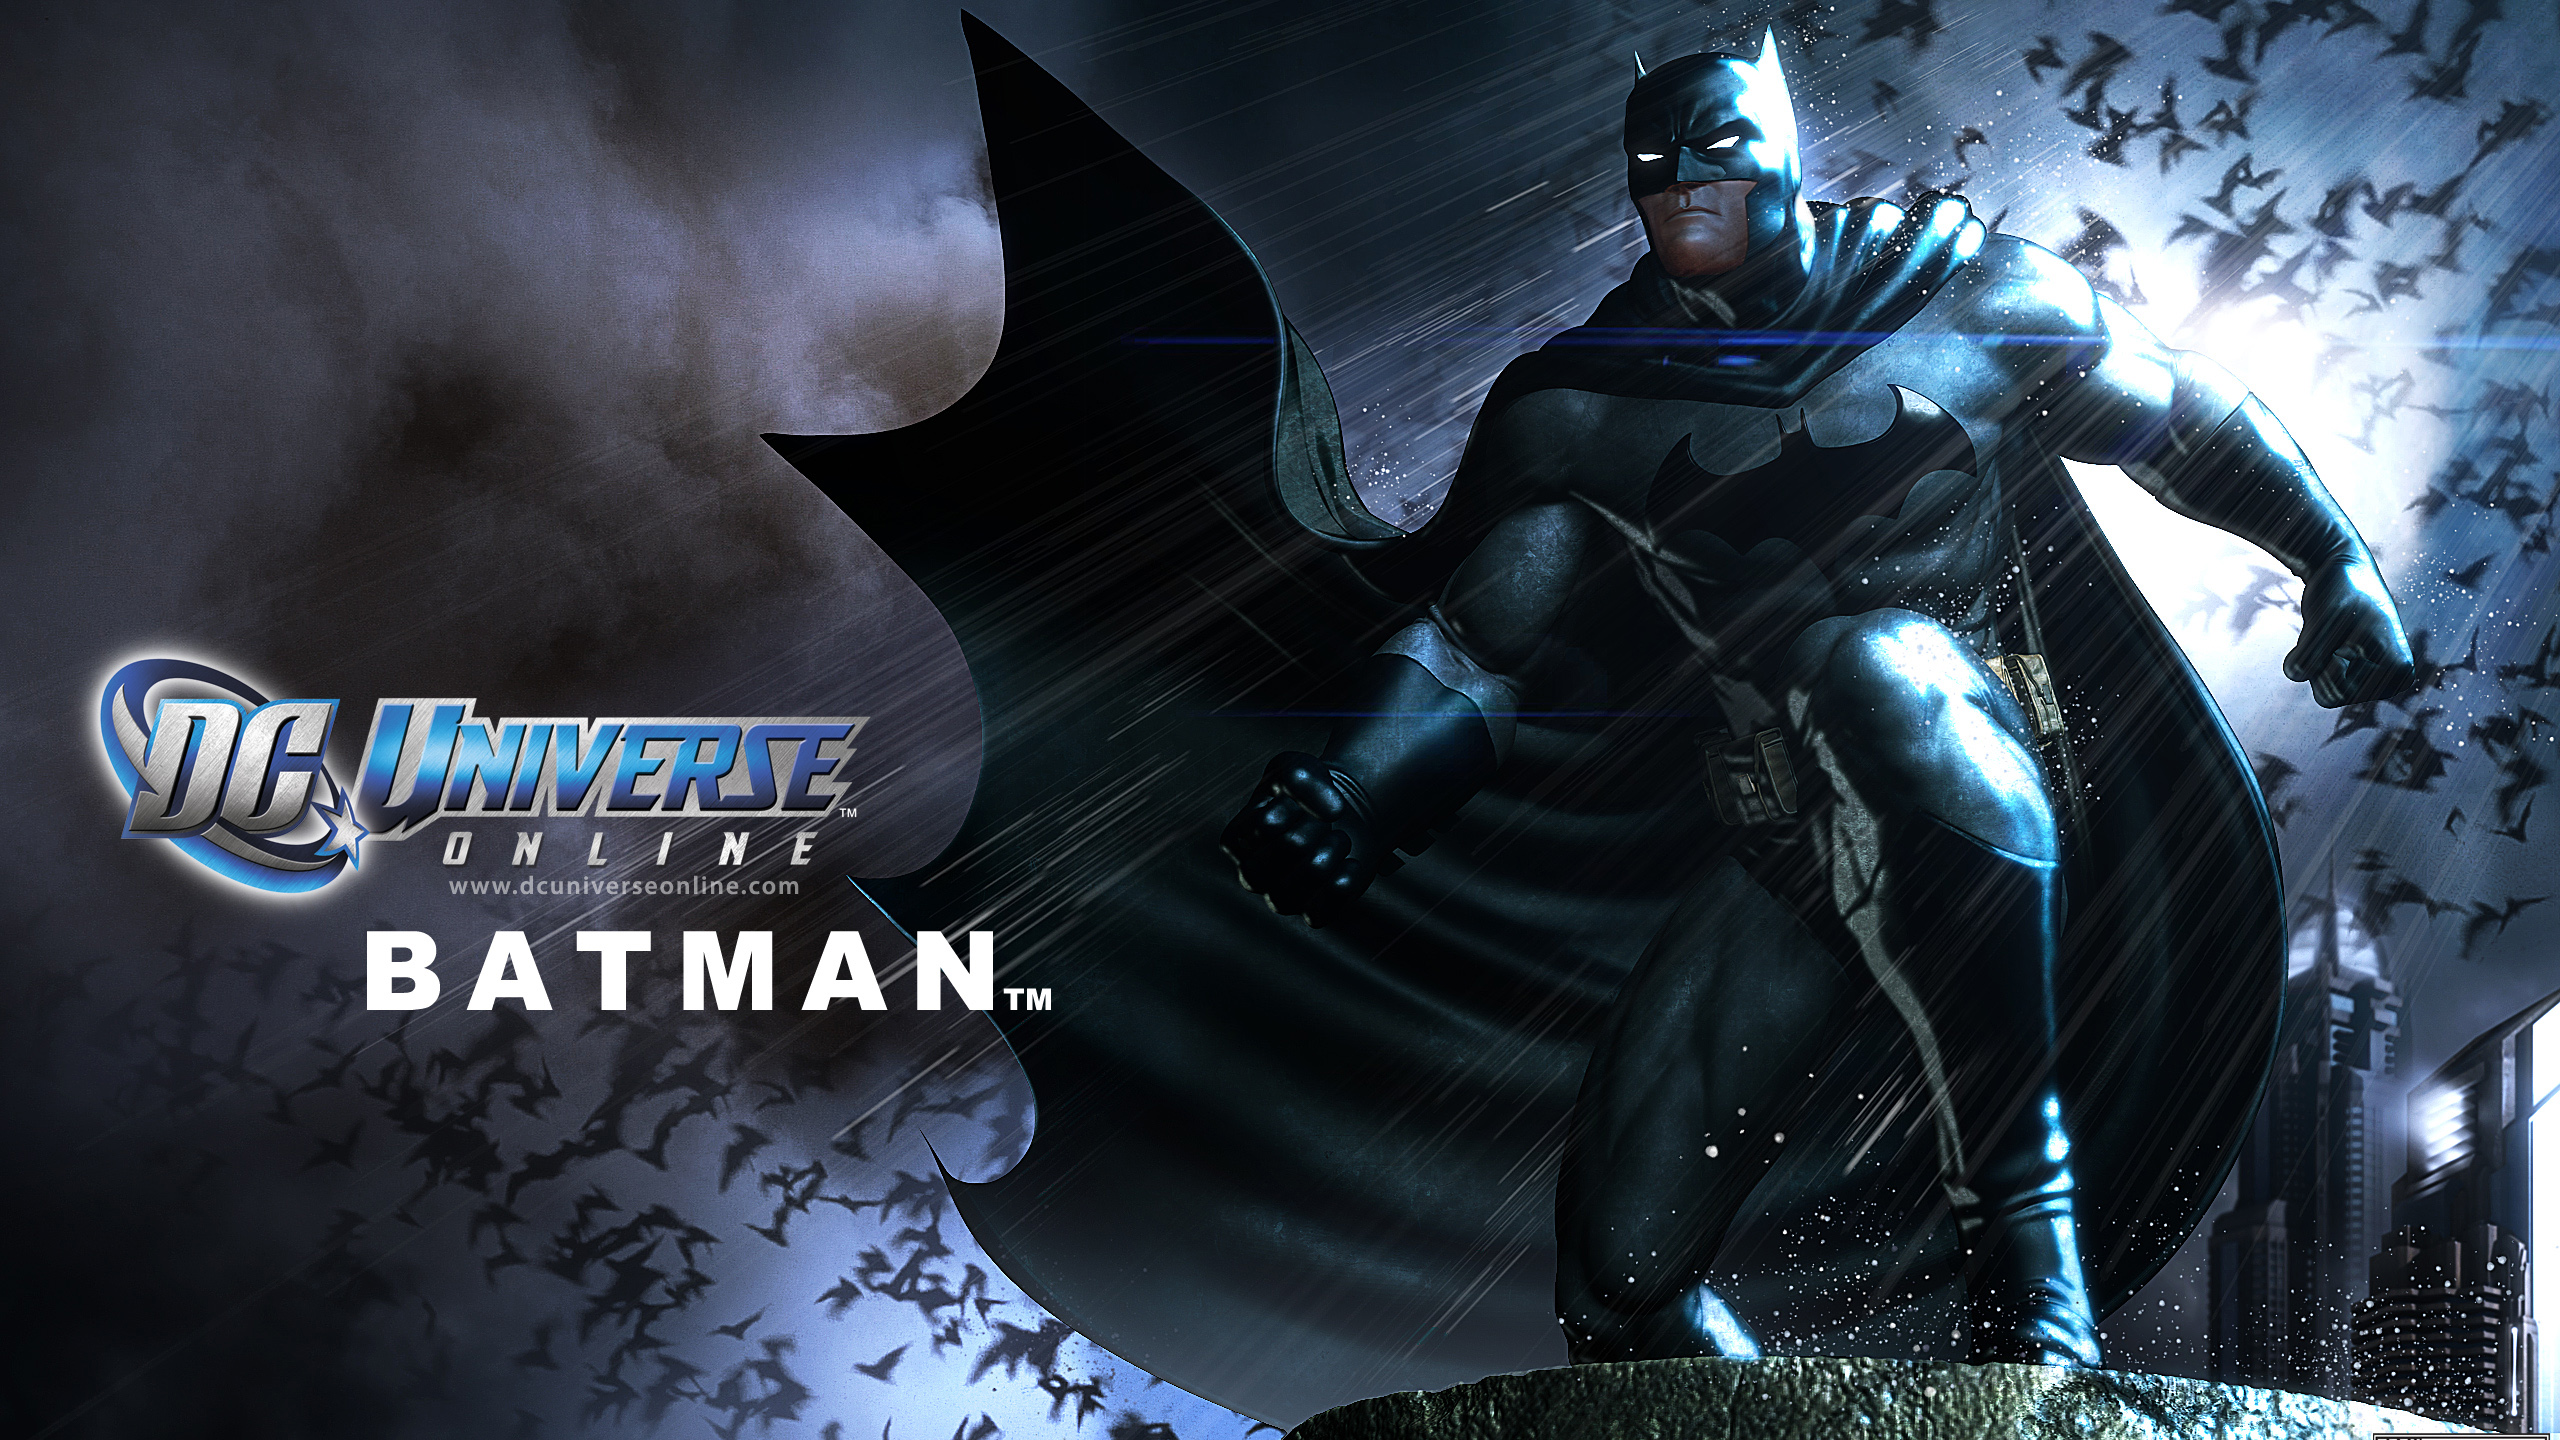 Batman in DC Universe Online 1262.73 Kb